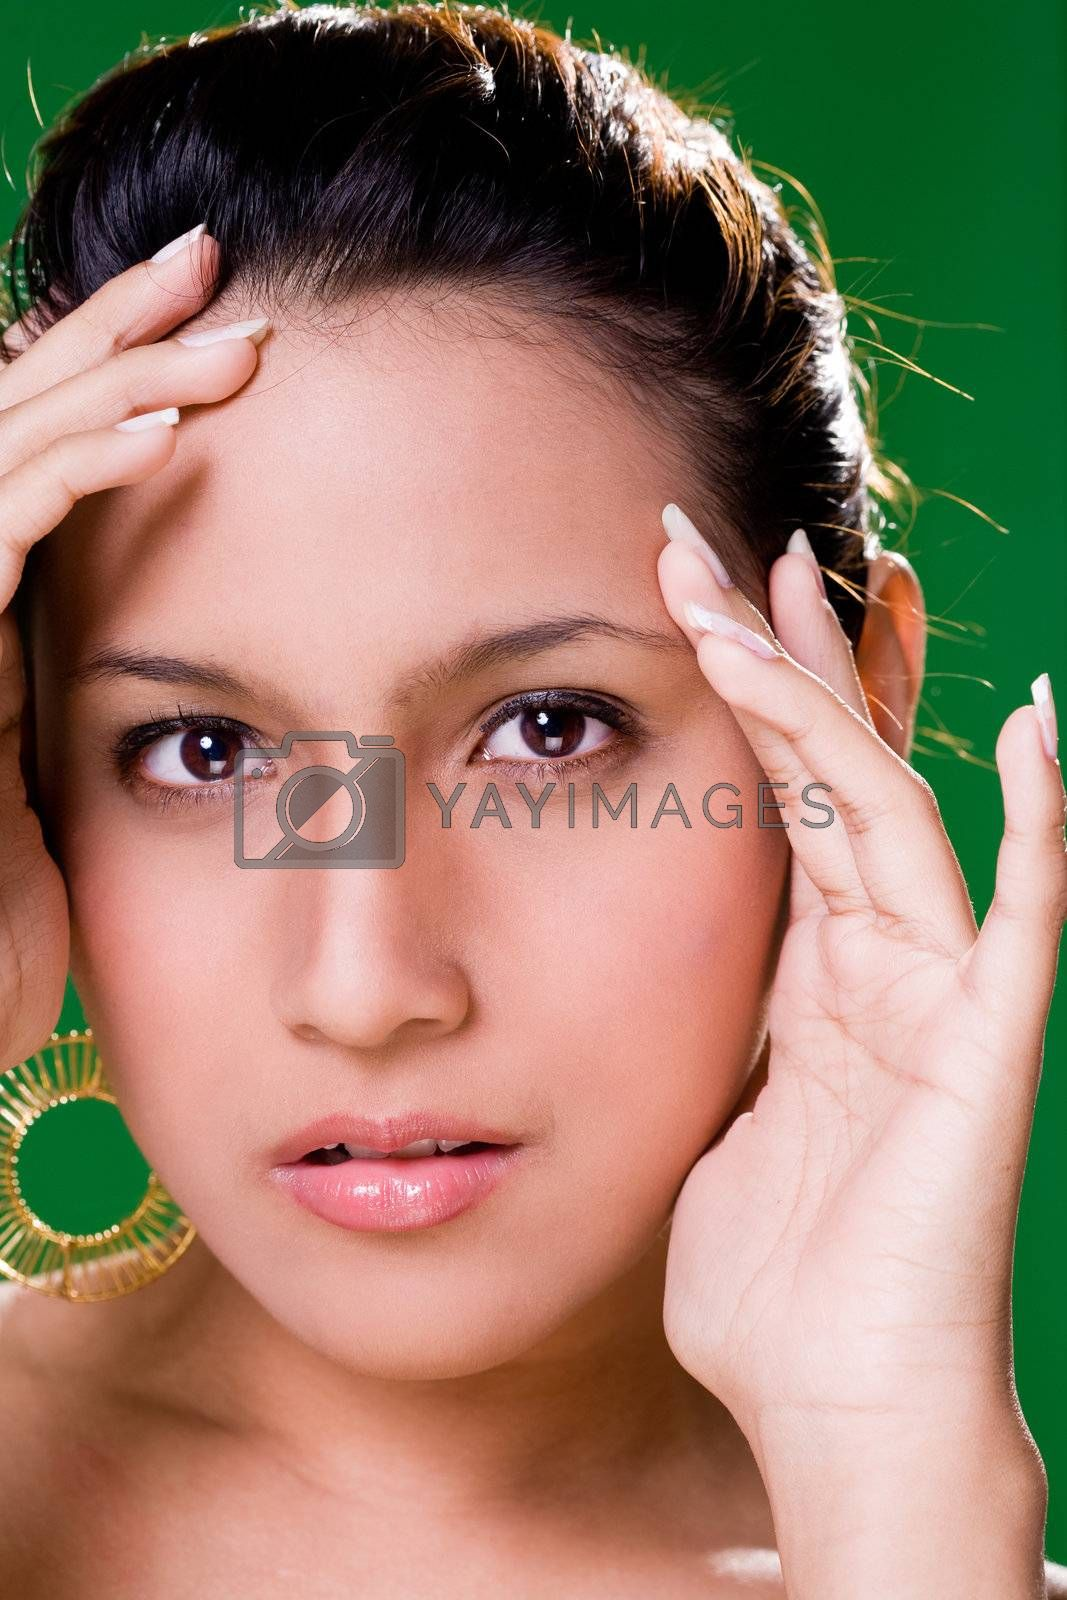 facial close up of a beautiful eurasian woman smile with cup hands